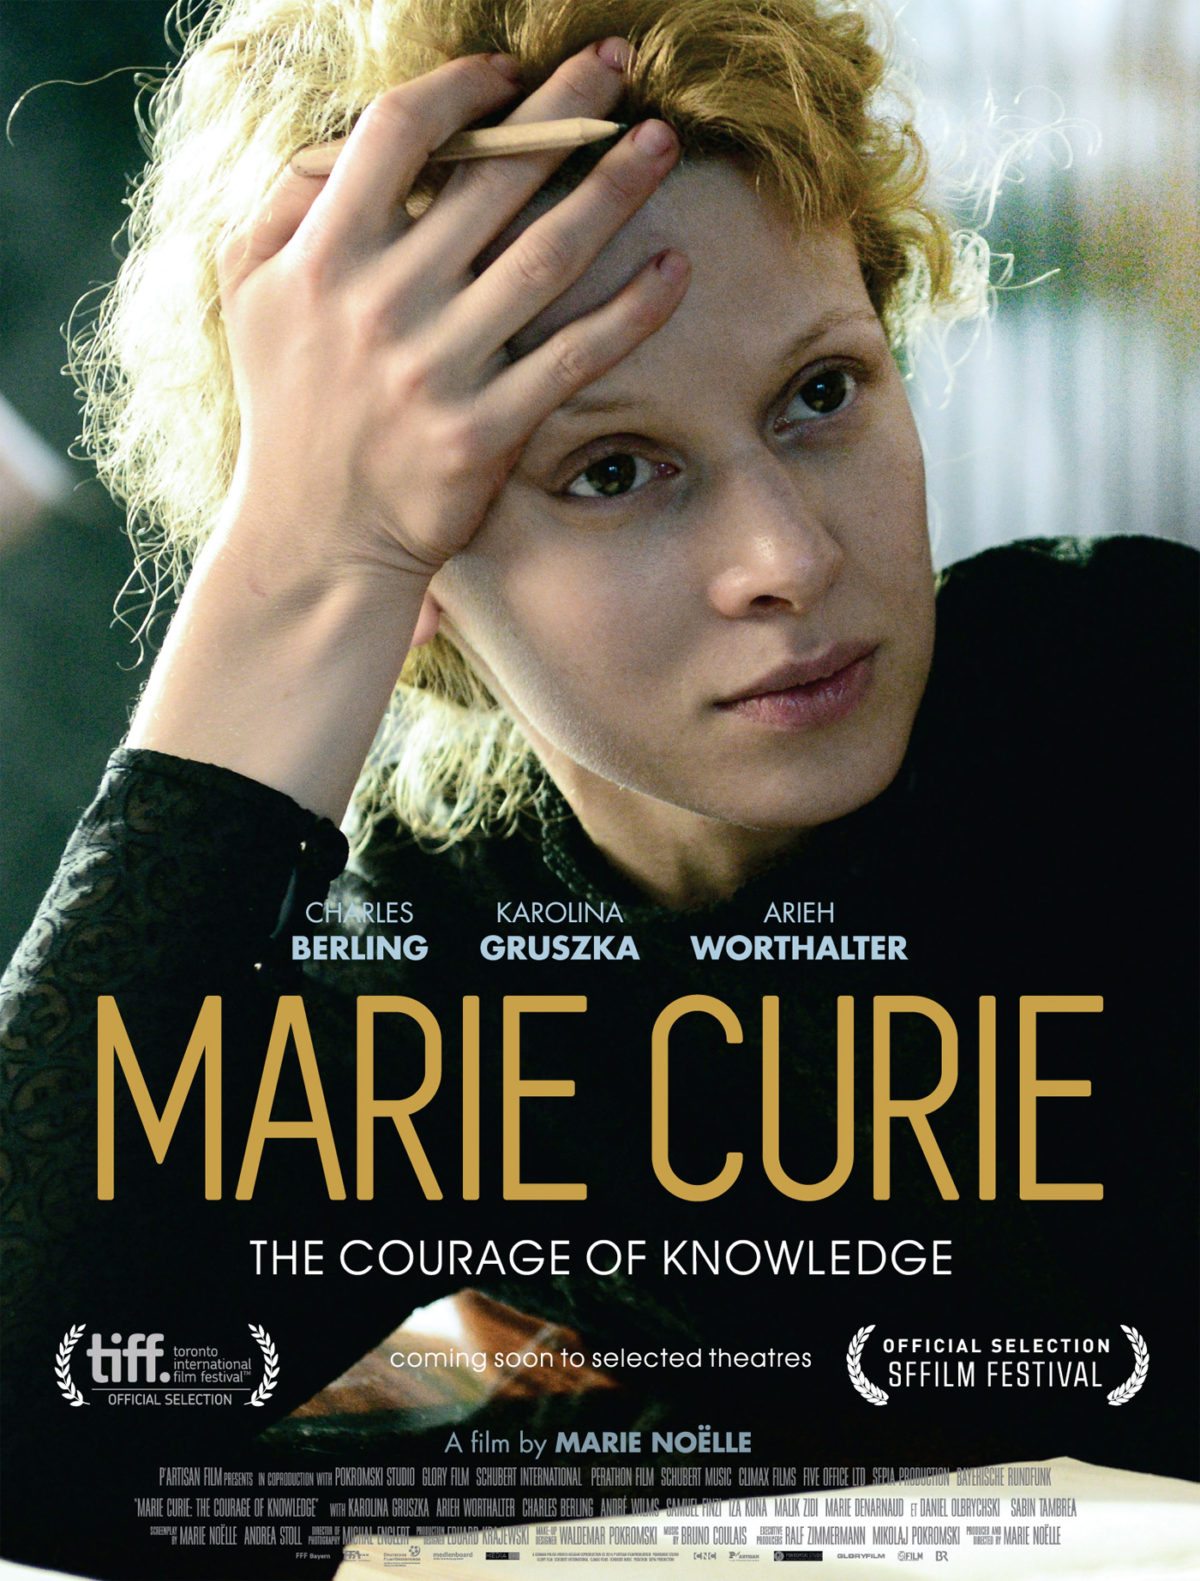 MARIE CURIE_22x29.cdr